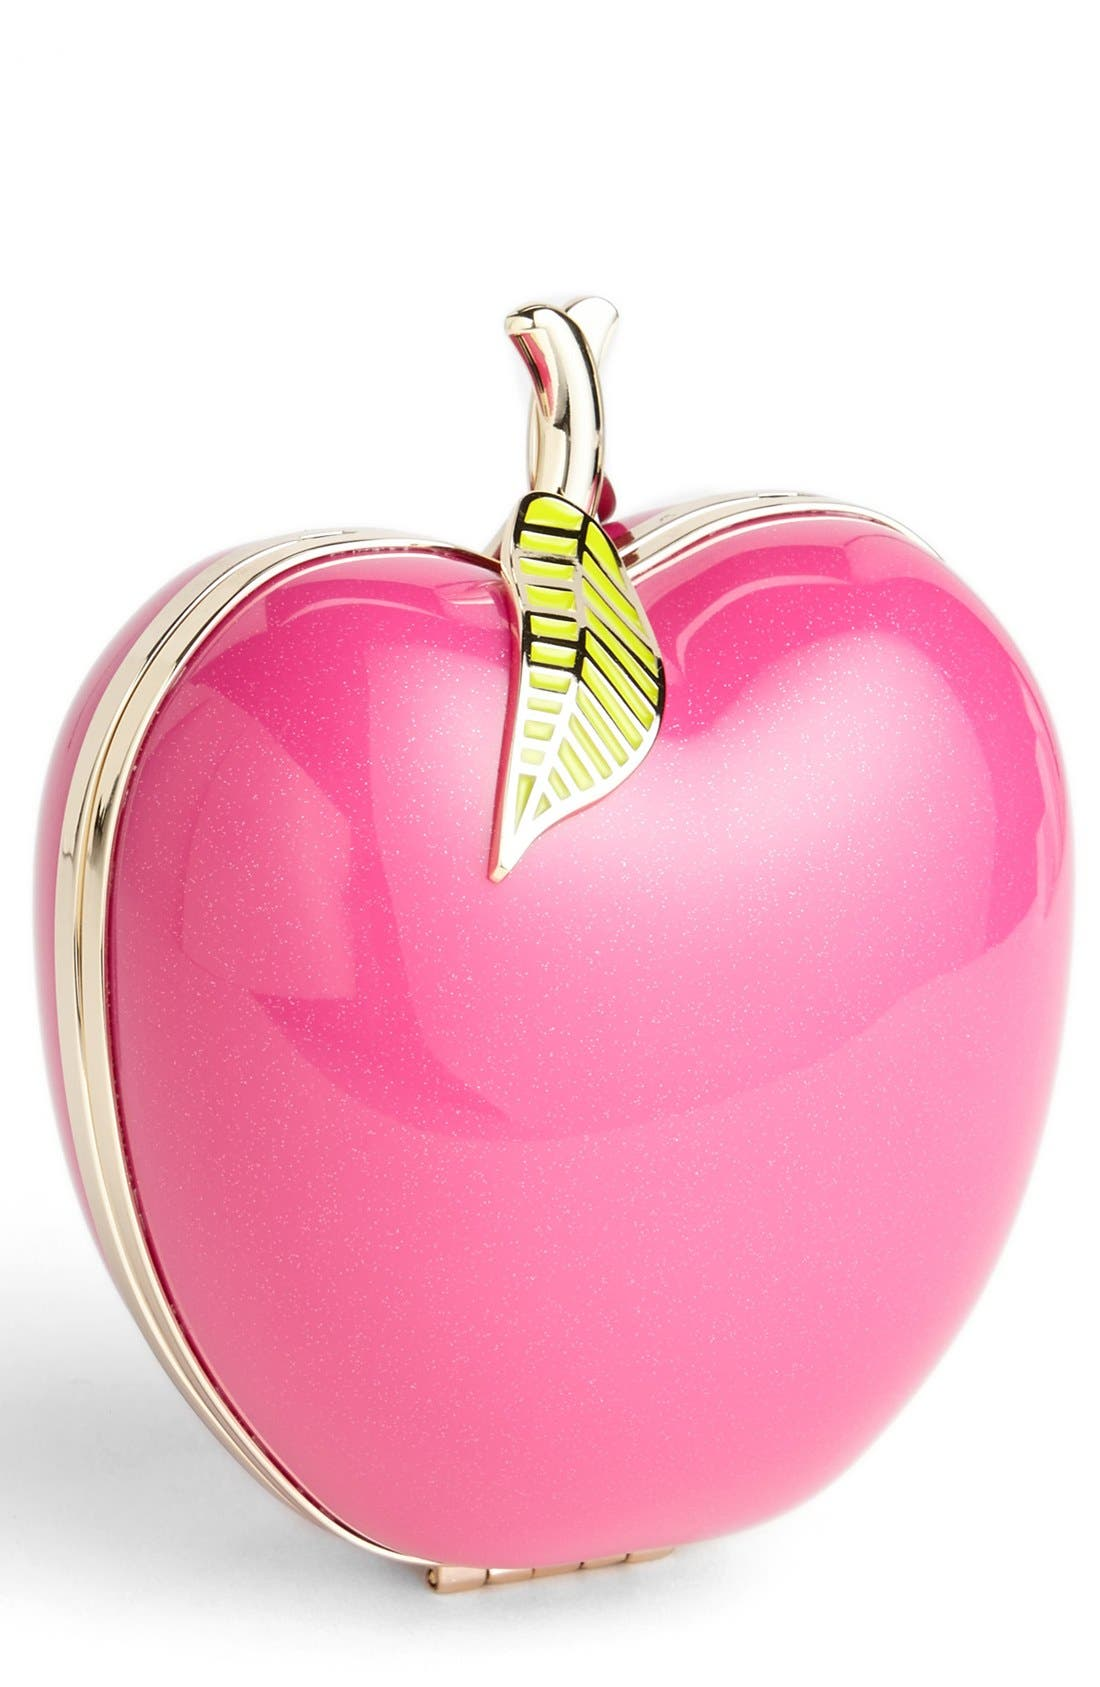 Main Image - kate spade new york 'far from the tree - apple' clutch